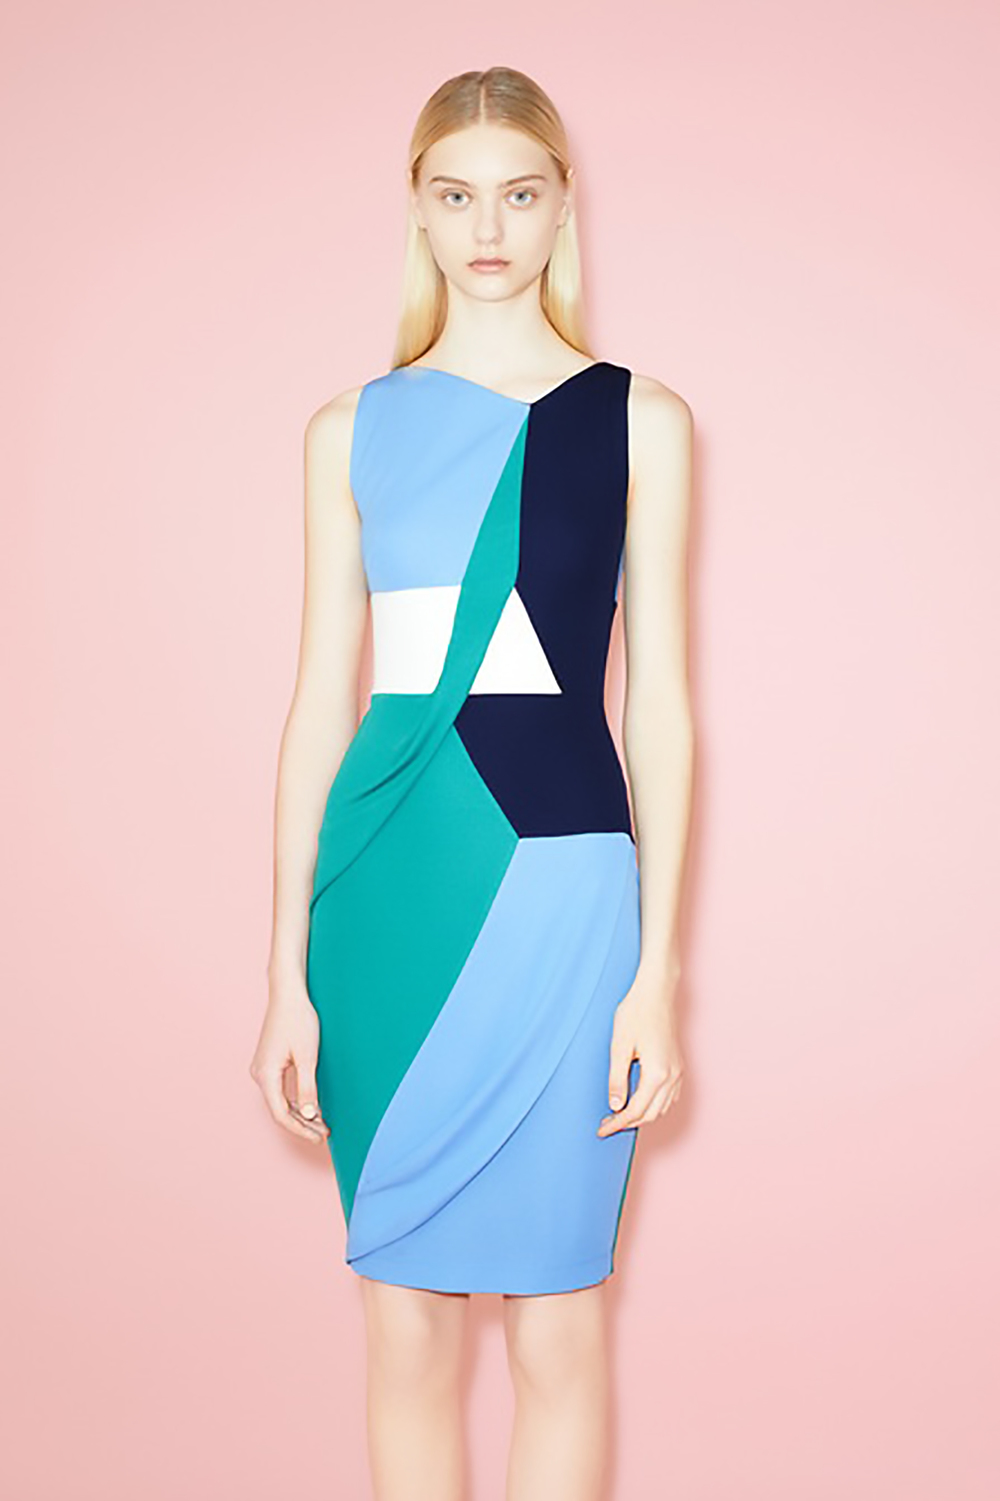 style.com peter pilotto resort 2014 look 23 peter pilotto 1500.jpg